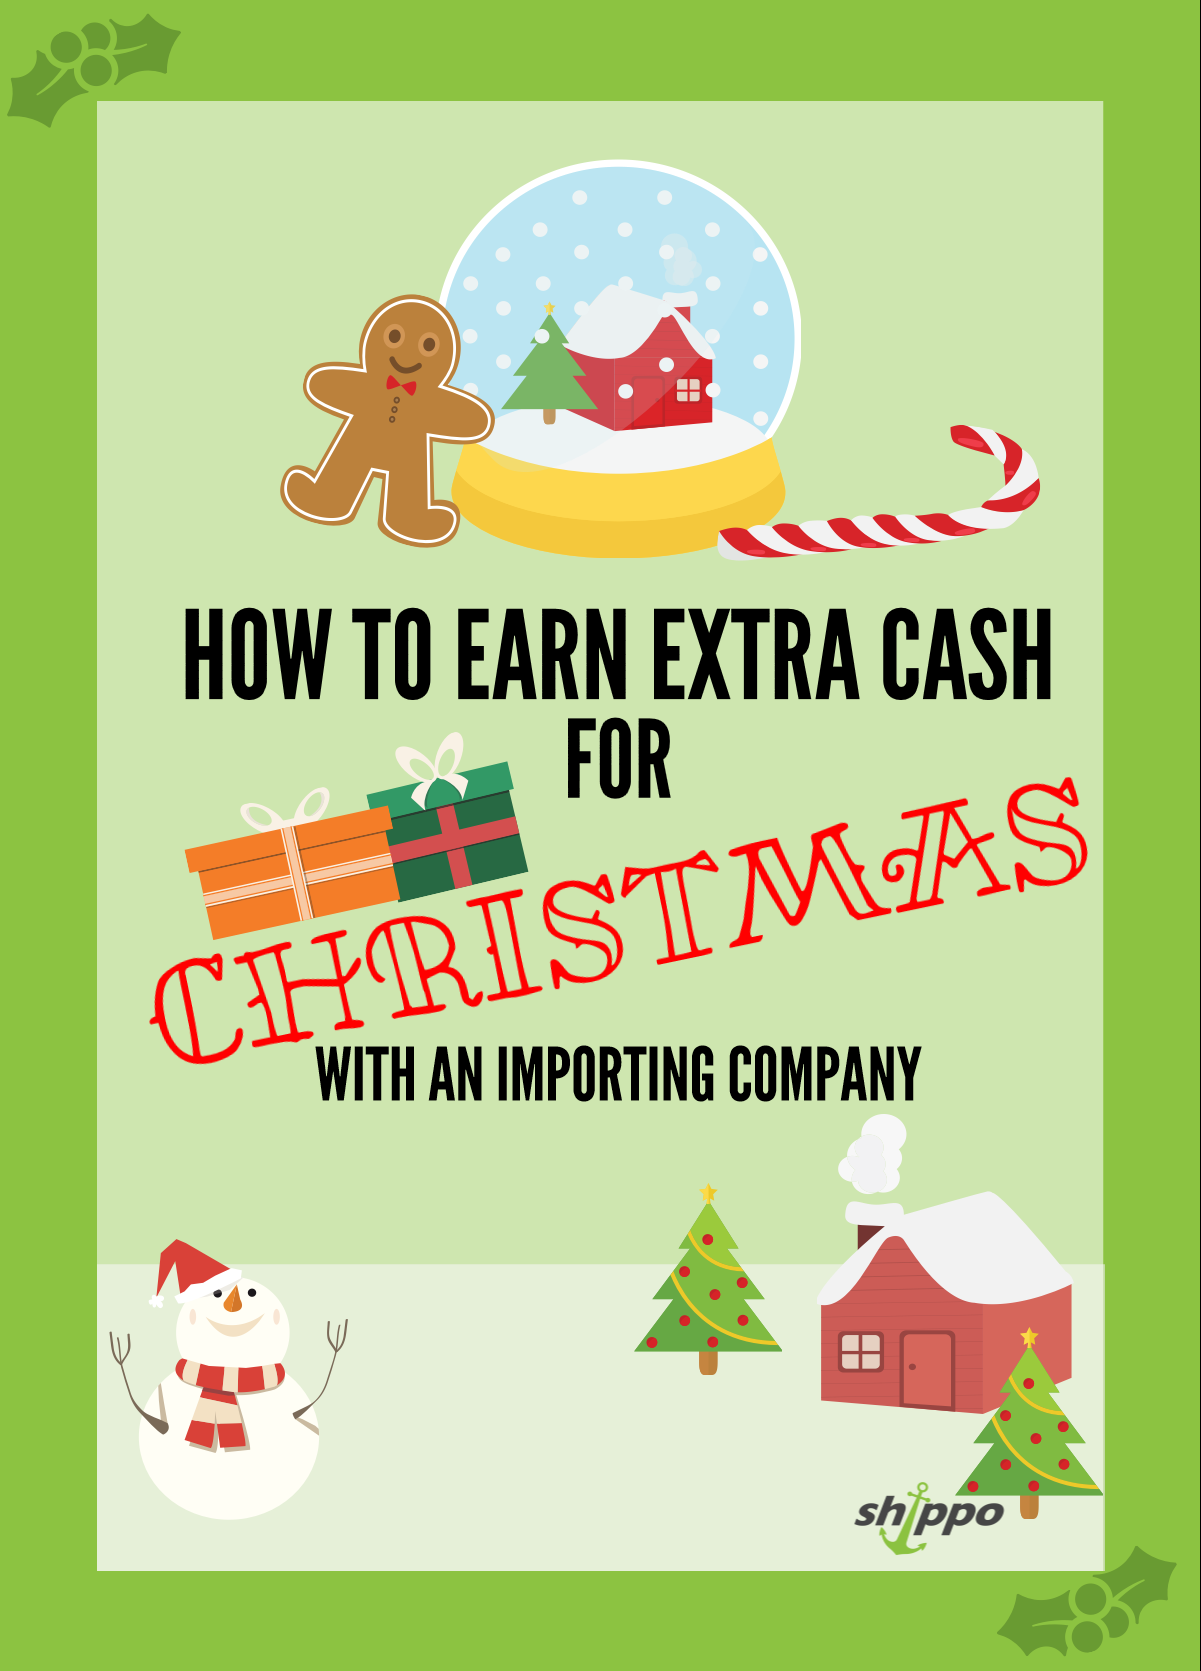 How To Earn Extra Cash For Christmas